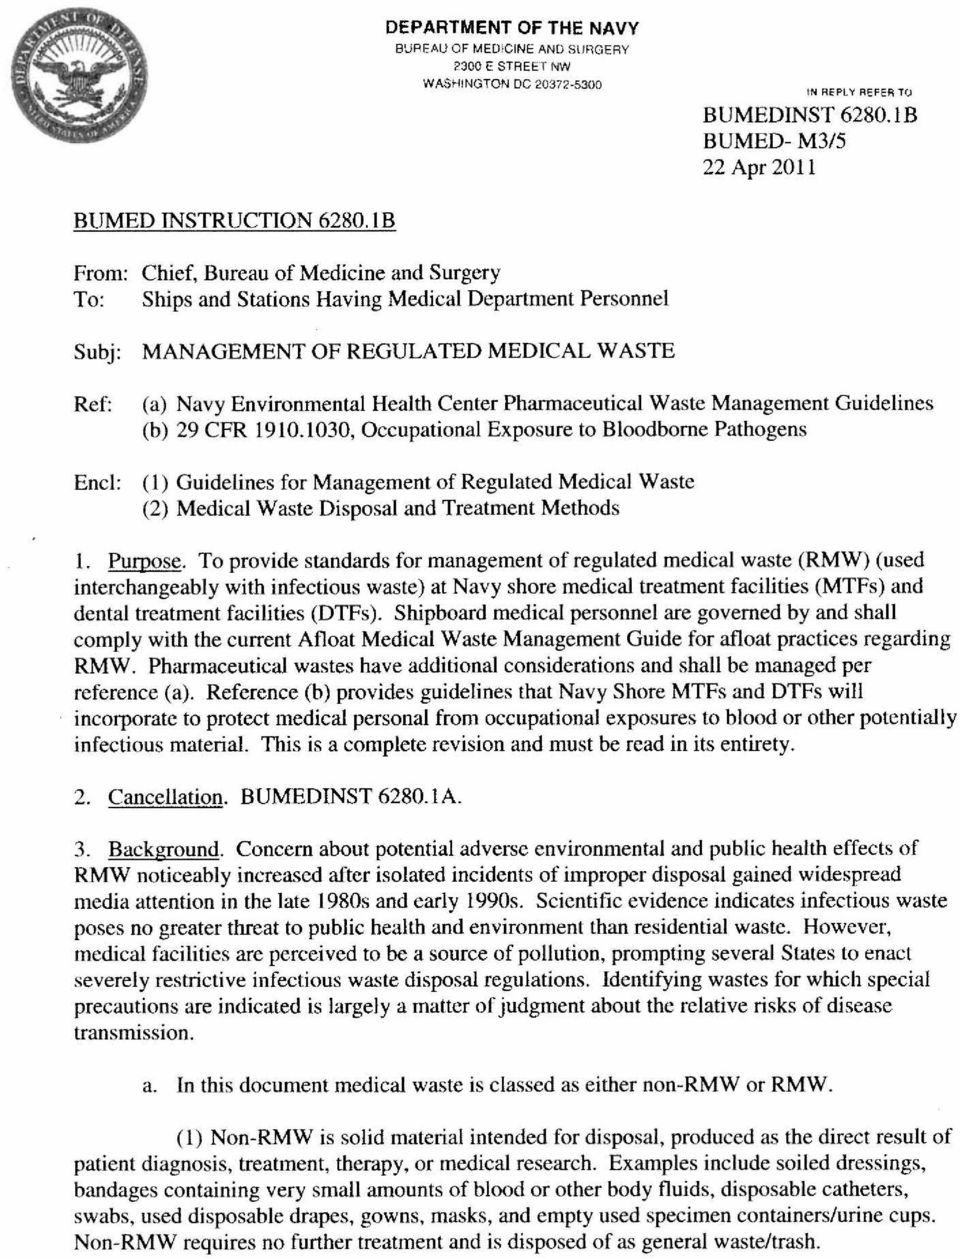 Pharmaceutical Waste Management Guidelines (b) 29 CFR 1910.